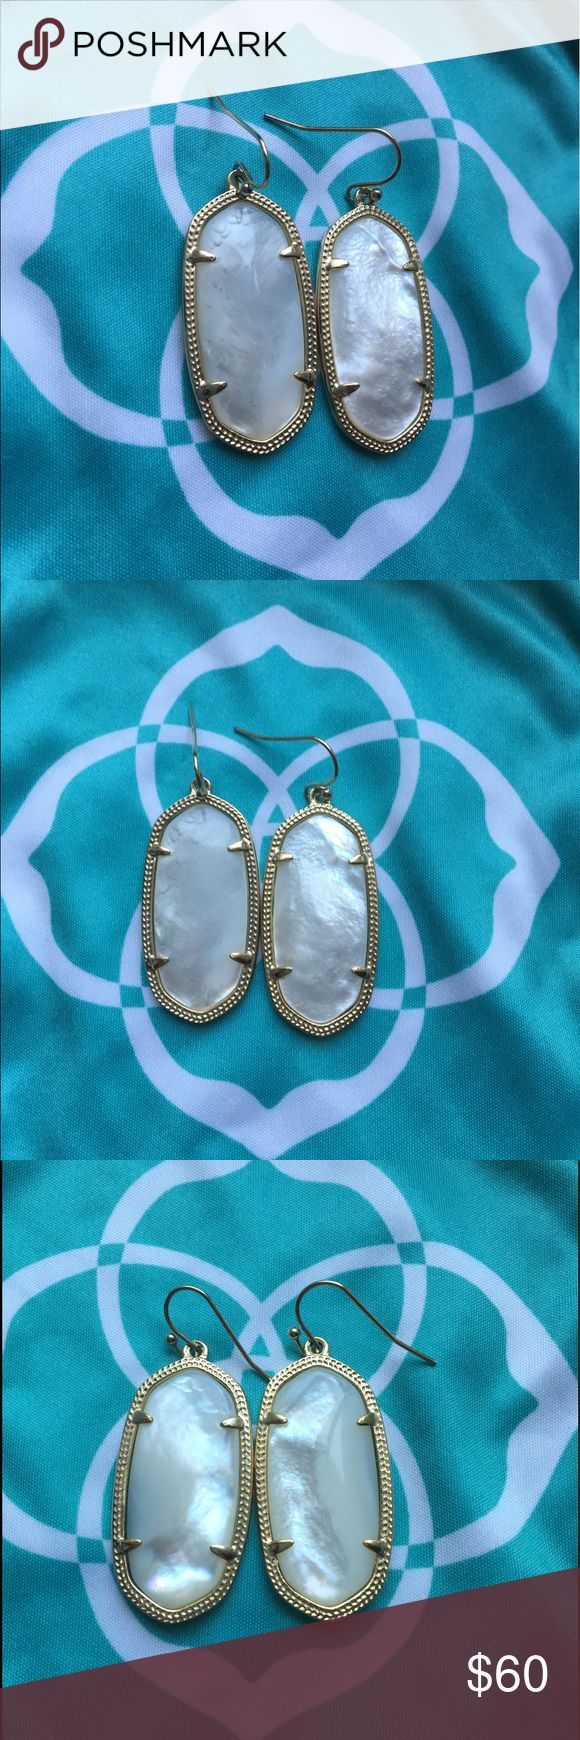 """Kendra scott Elle Earrings Kendra Scott """"Elle"""" earring in mother of pearl. Mother of pearl is a natural stone which causes variations in stone appearance, as seen in photos. Gold plated. Front and back of earring both pictured above. Does not come with dust bag. Price is firm! Kendra Scott Jewelry Earrings"""